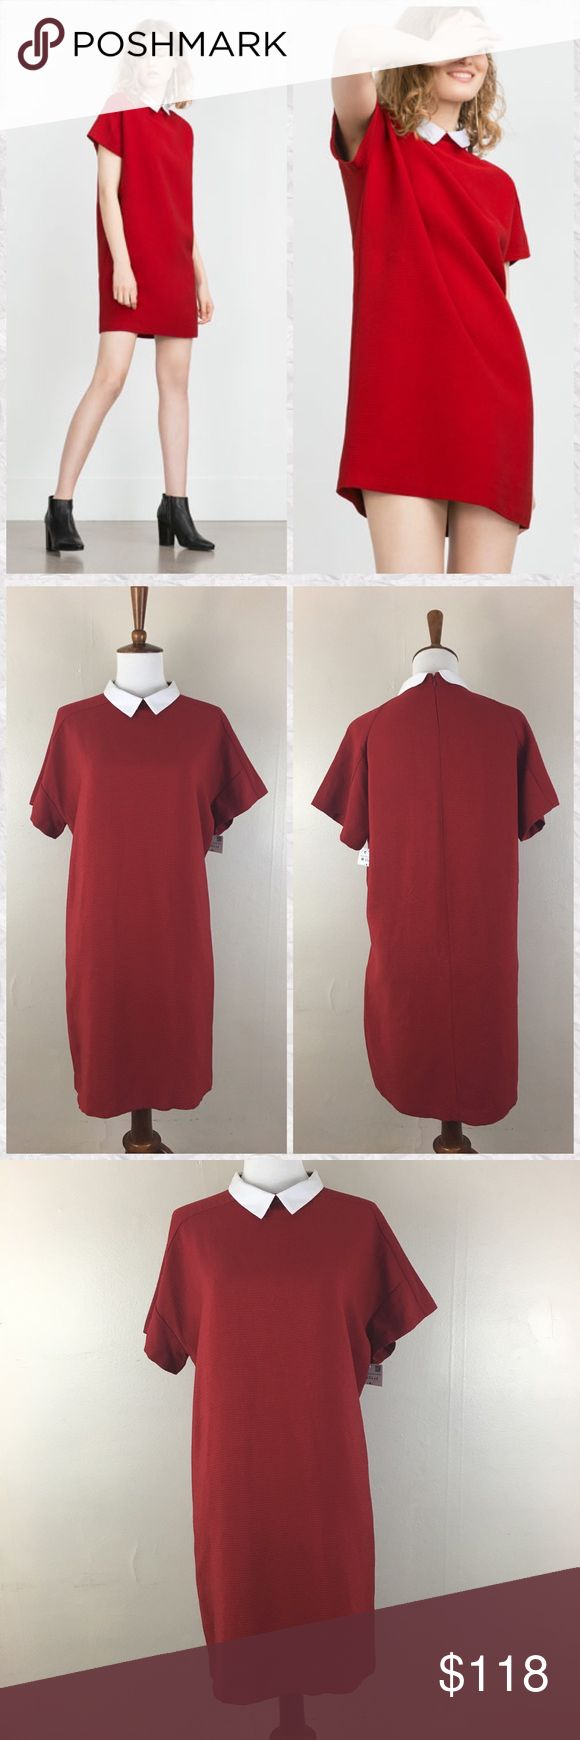 """Zara Red Collared Shift Dress *Condition: NWT. Tags cut to avoid returns. *Tag reads M but runs a bit large in my opinion. Please review measurements *True color is most accurately shown in photos of actual item *Neckline: Collared *Ribbed feel to Fabric *Sleeve Style: Cap *Silhouette: Shift *Back Zip *Pockets: No *Shell: 67% Viscose 33% Cotton exclusive of decoration  *Lining: No *Dry clean *Measurements approx & taken lying flat *Bust: 41"""" *Waist: 40"""" *Hip: 41"""" *Shoulder to Hem: 33.5""""…"""